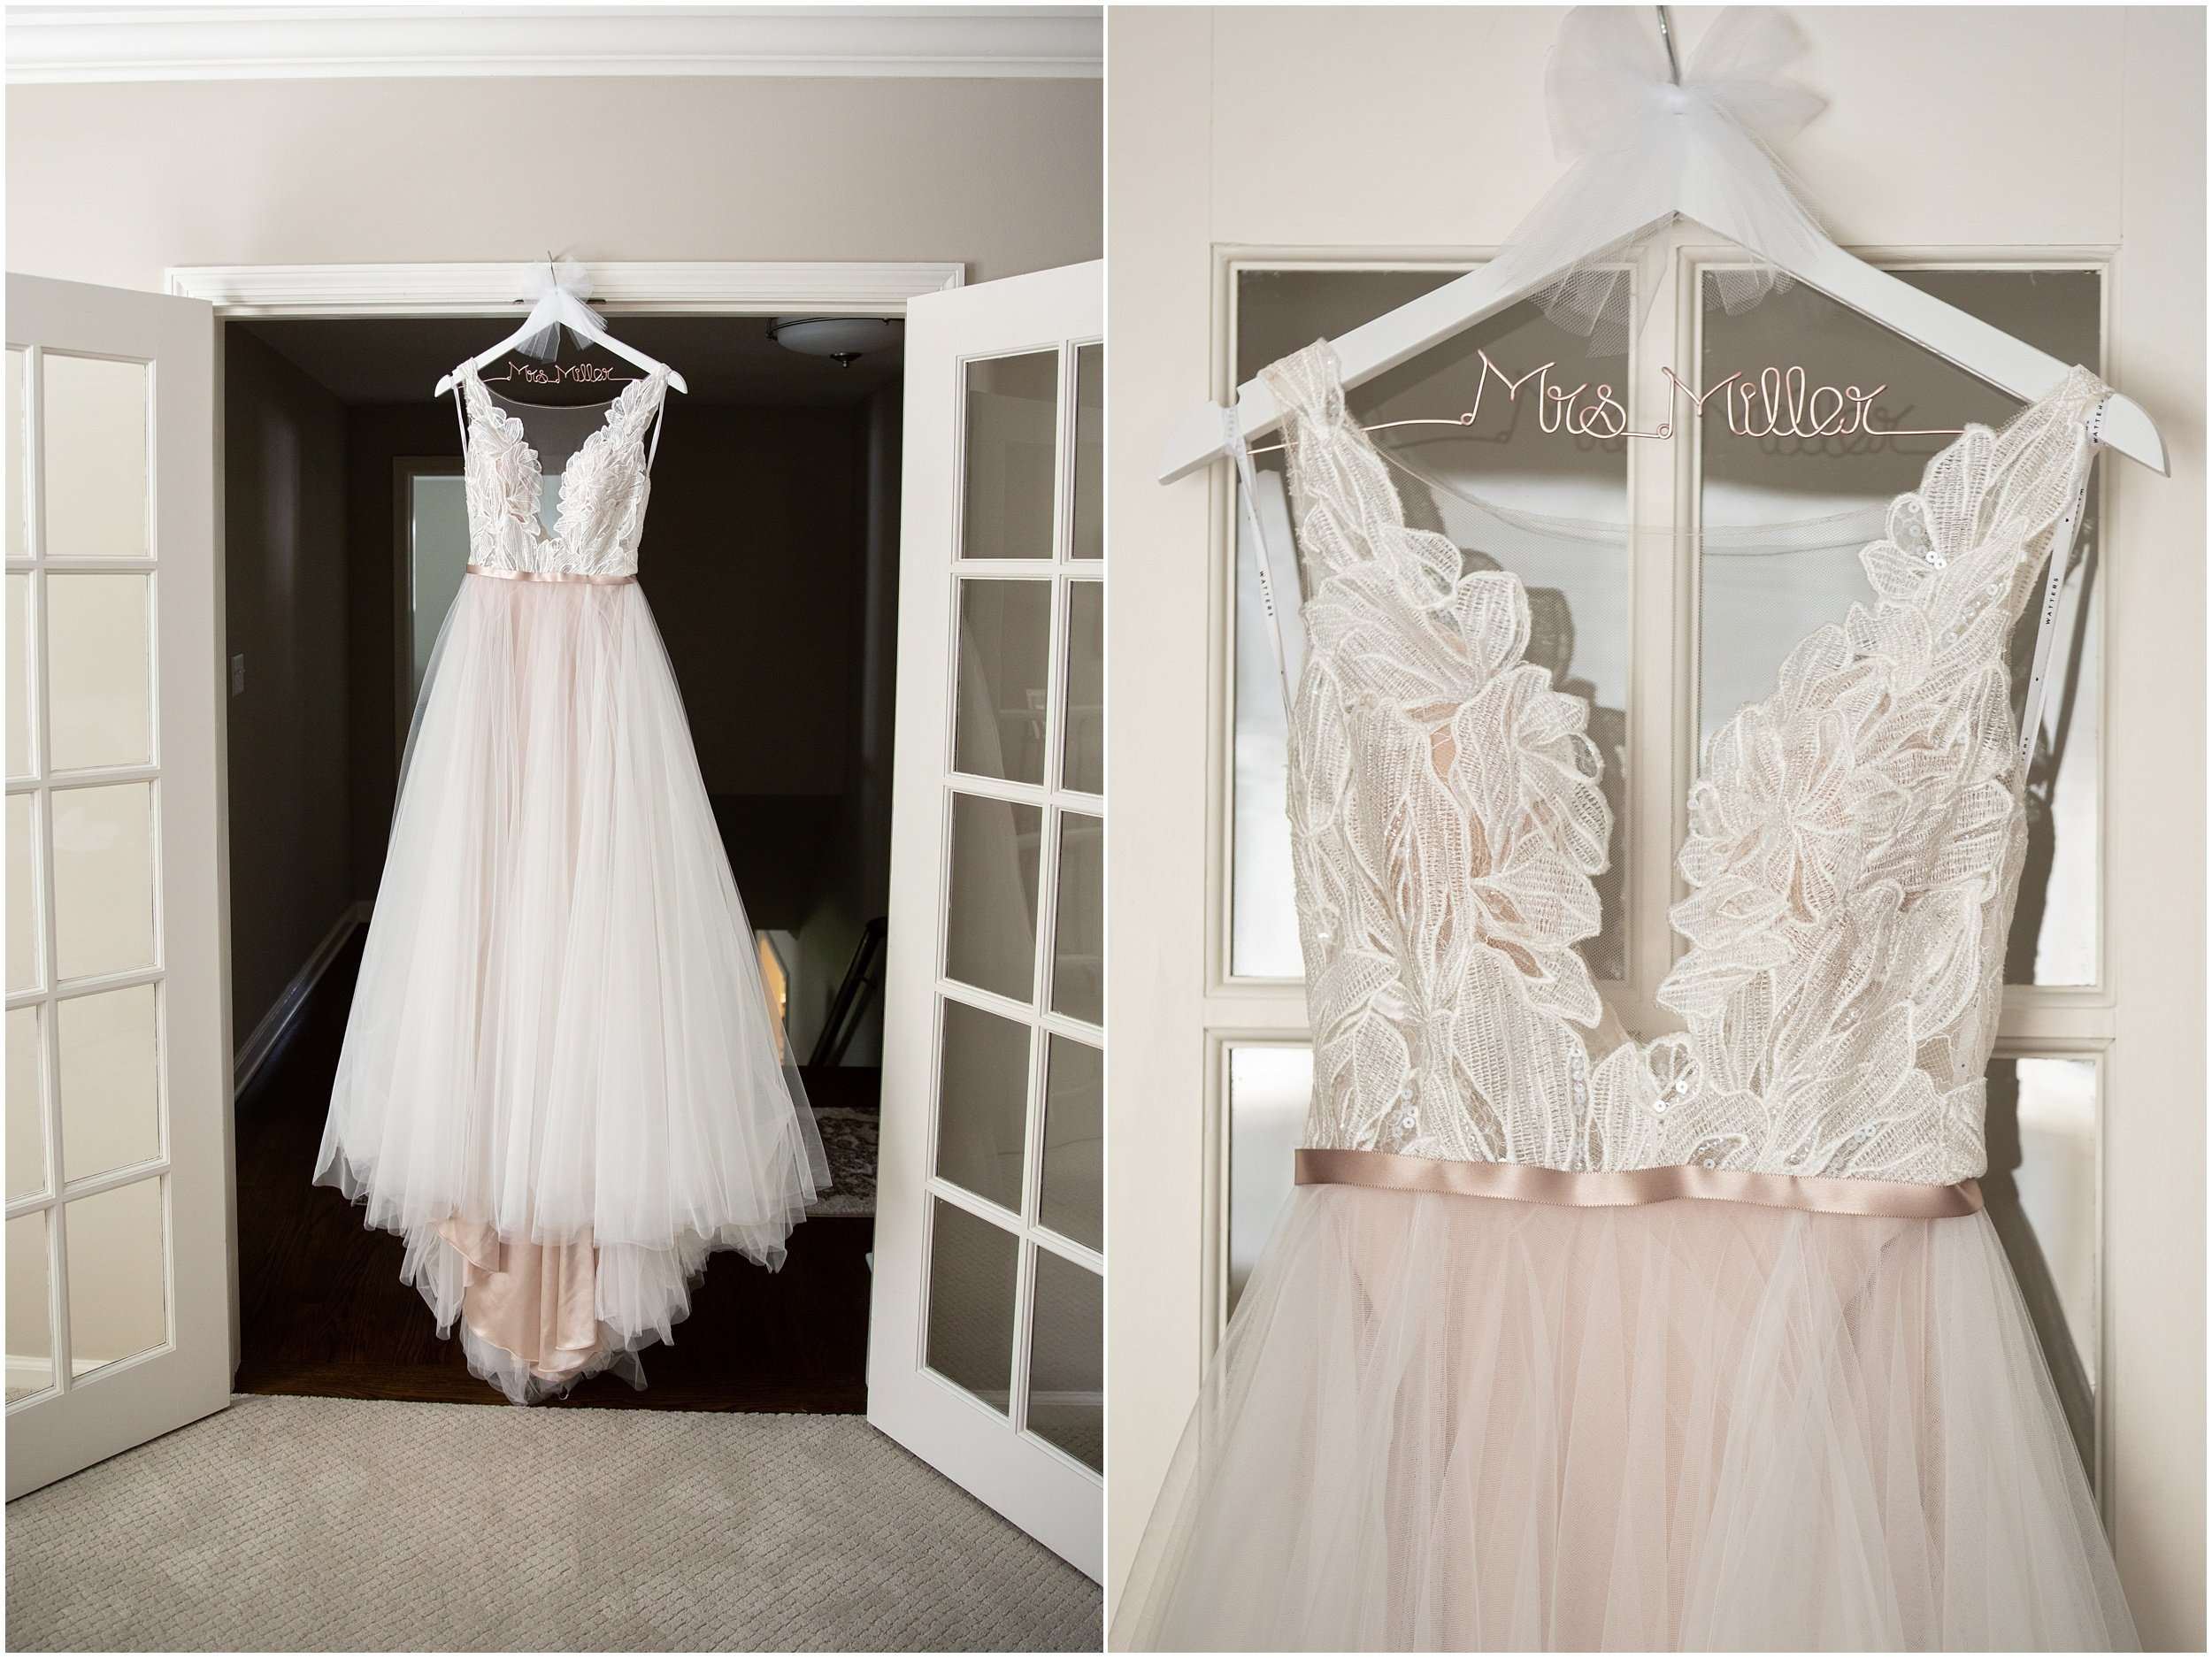 a blush and ivory bridal gown hanging in a doorway